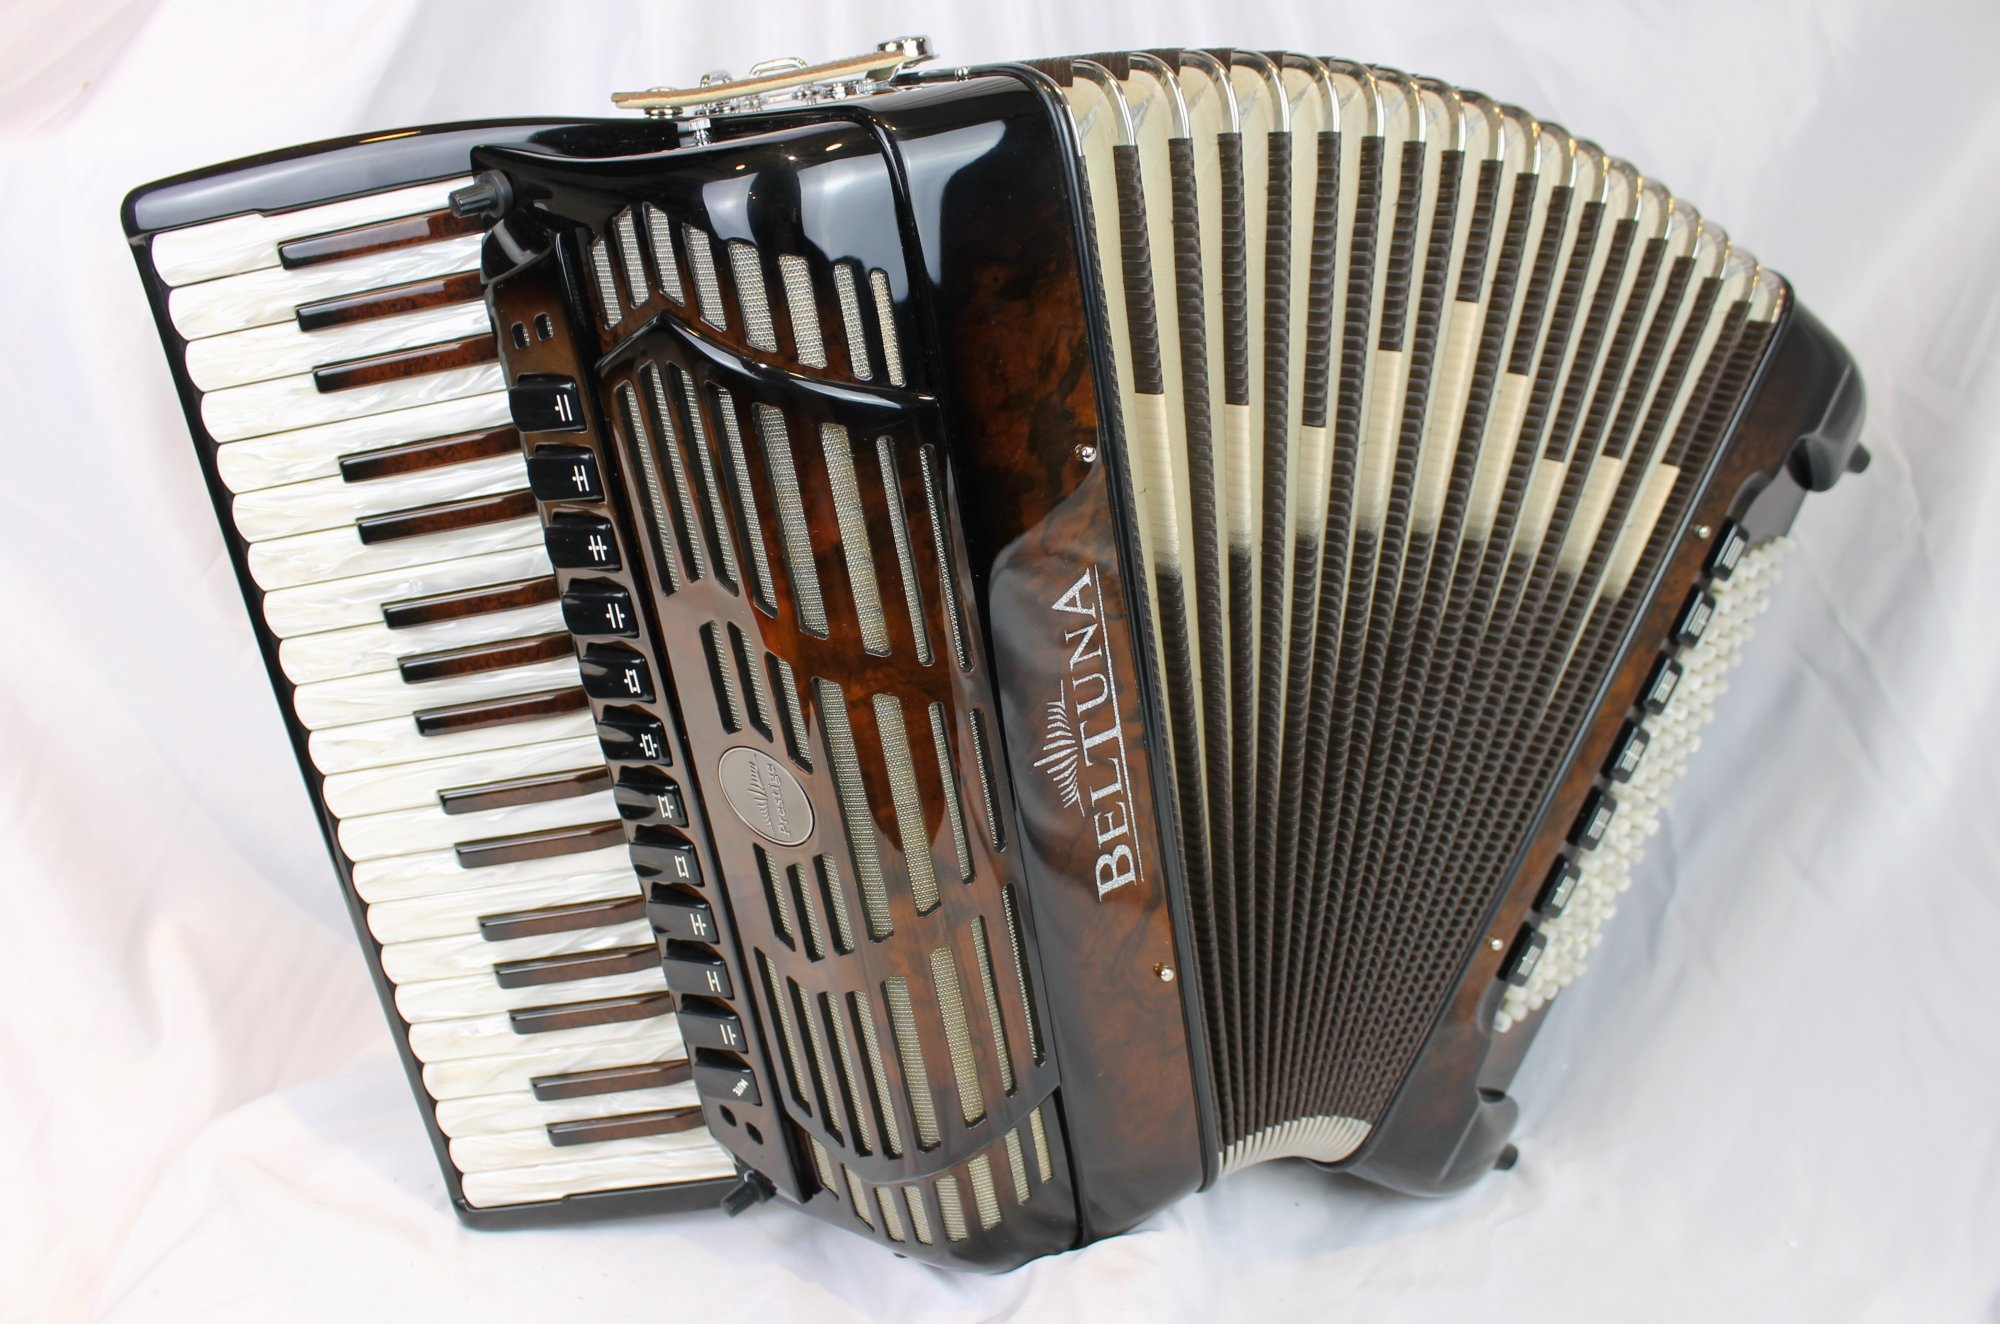 NEW Walnut Root Beltuna Prestige IV Piano Accordion LMMH 37 96 with Microphones